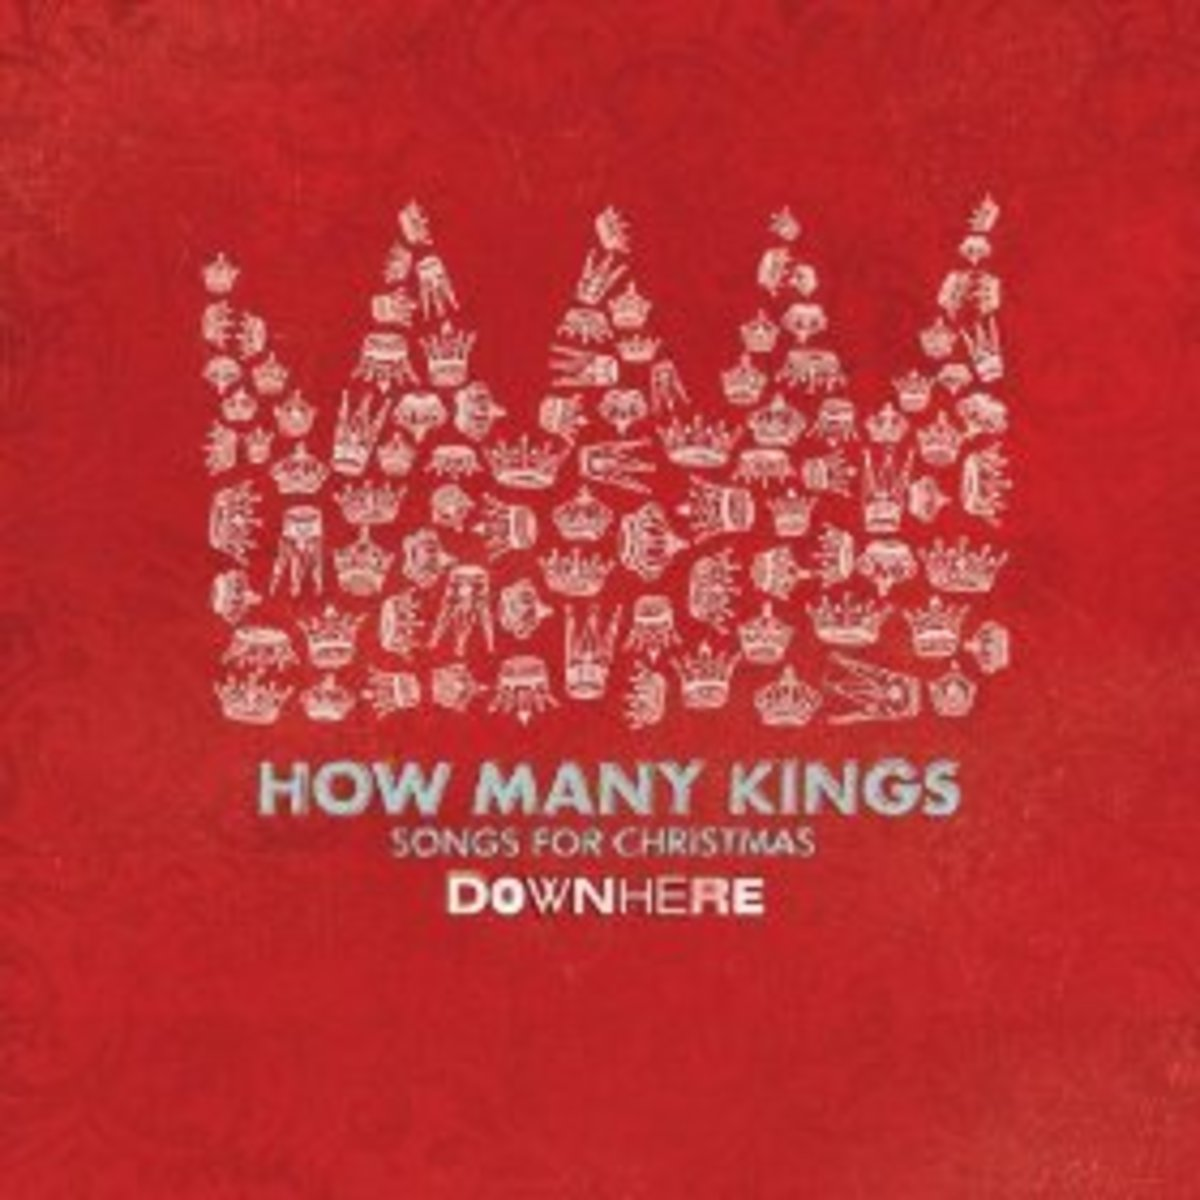 how many kings is a song by downhere a christian rock band from canada it is the title track for the 2010 album how many kings songs for christmas